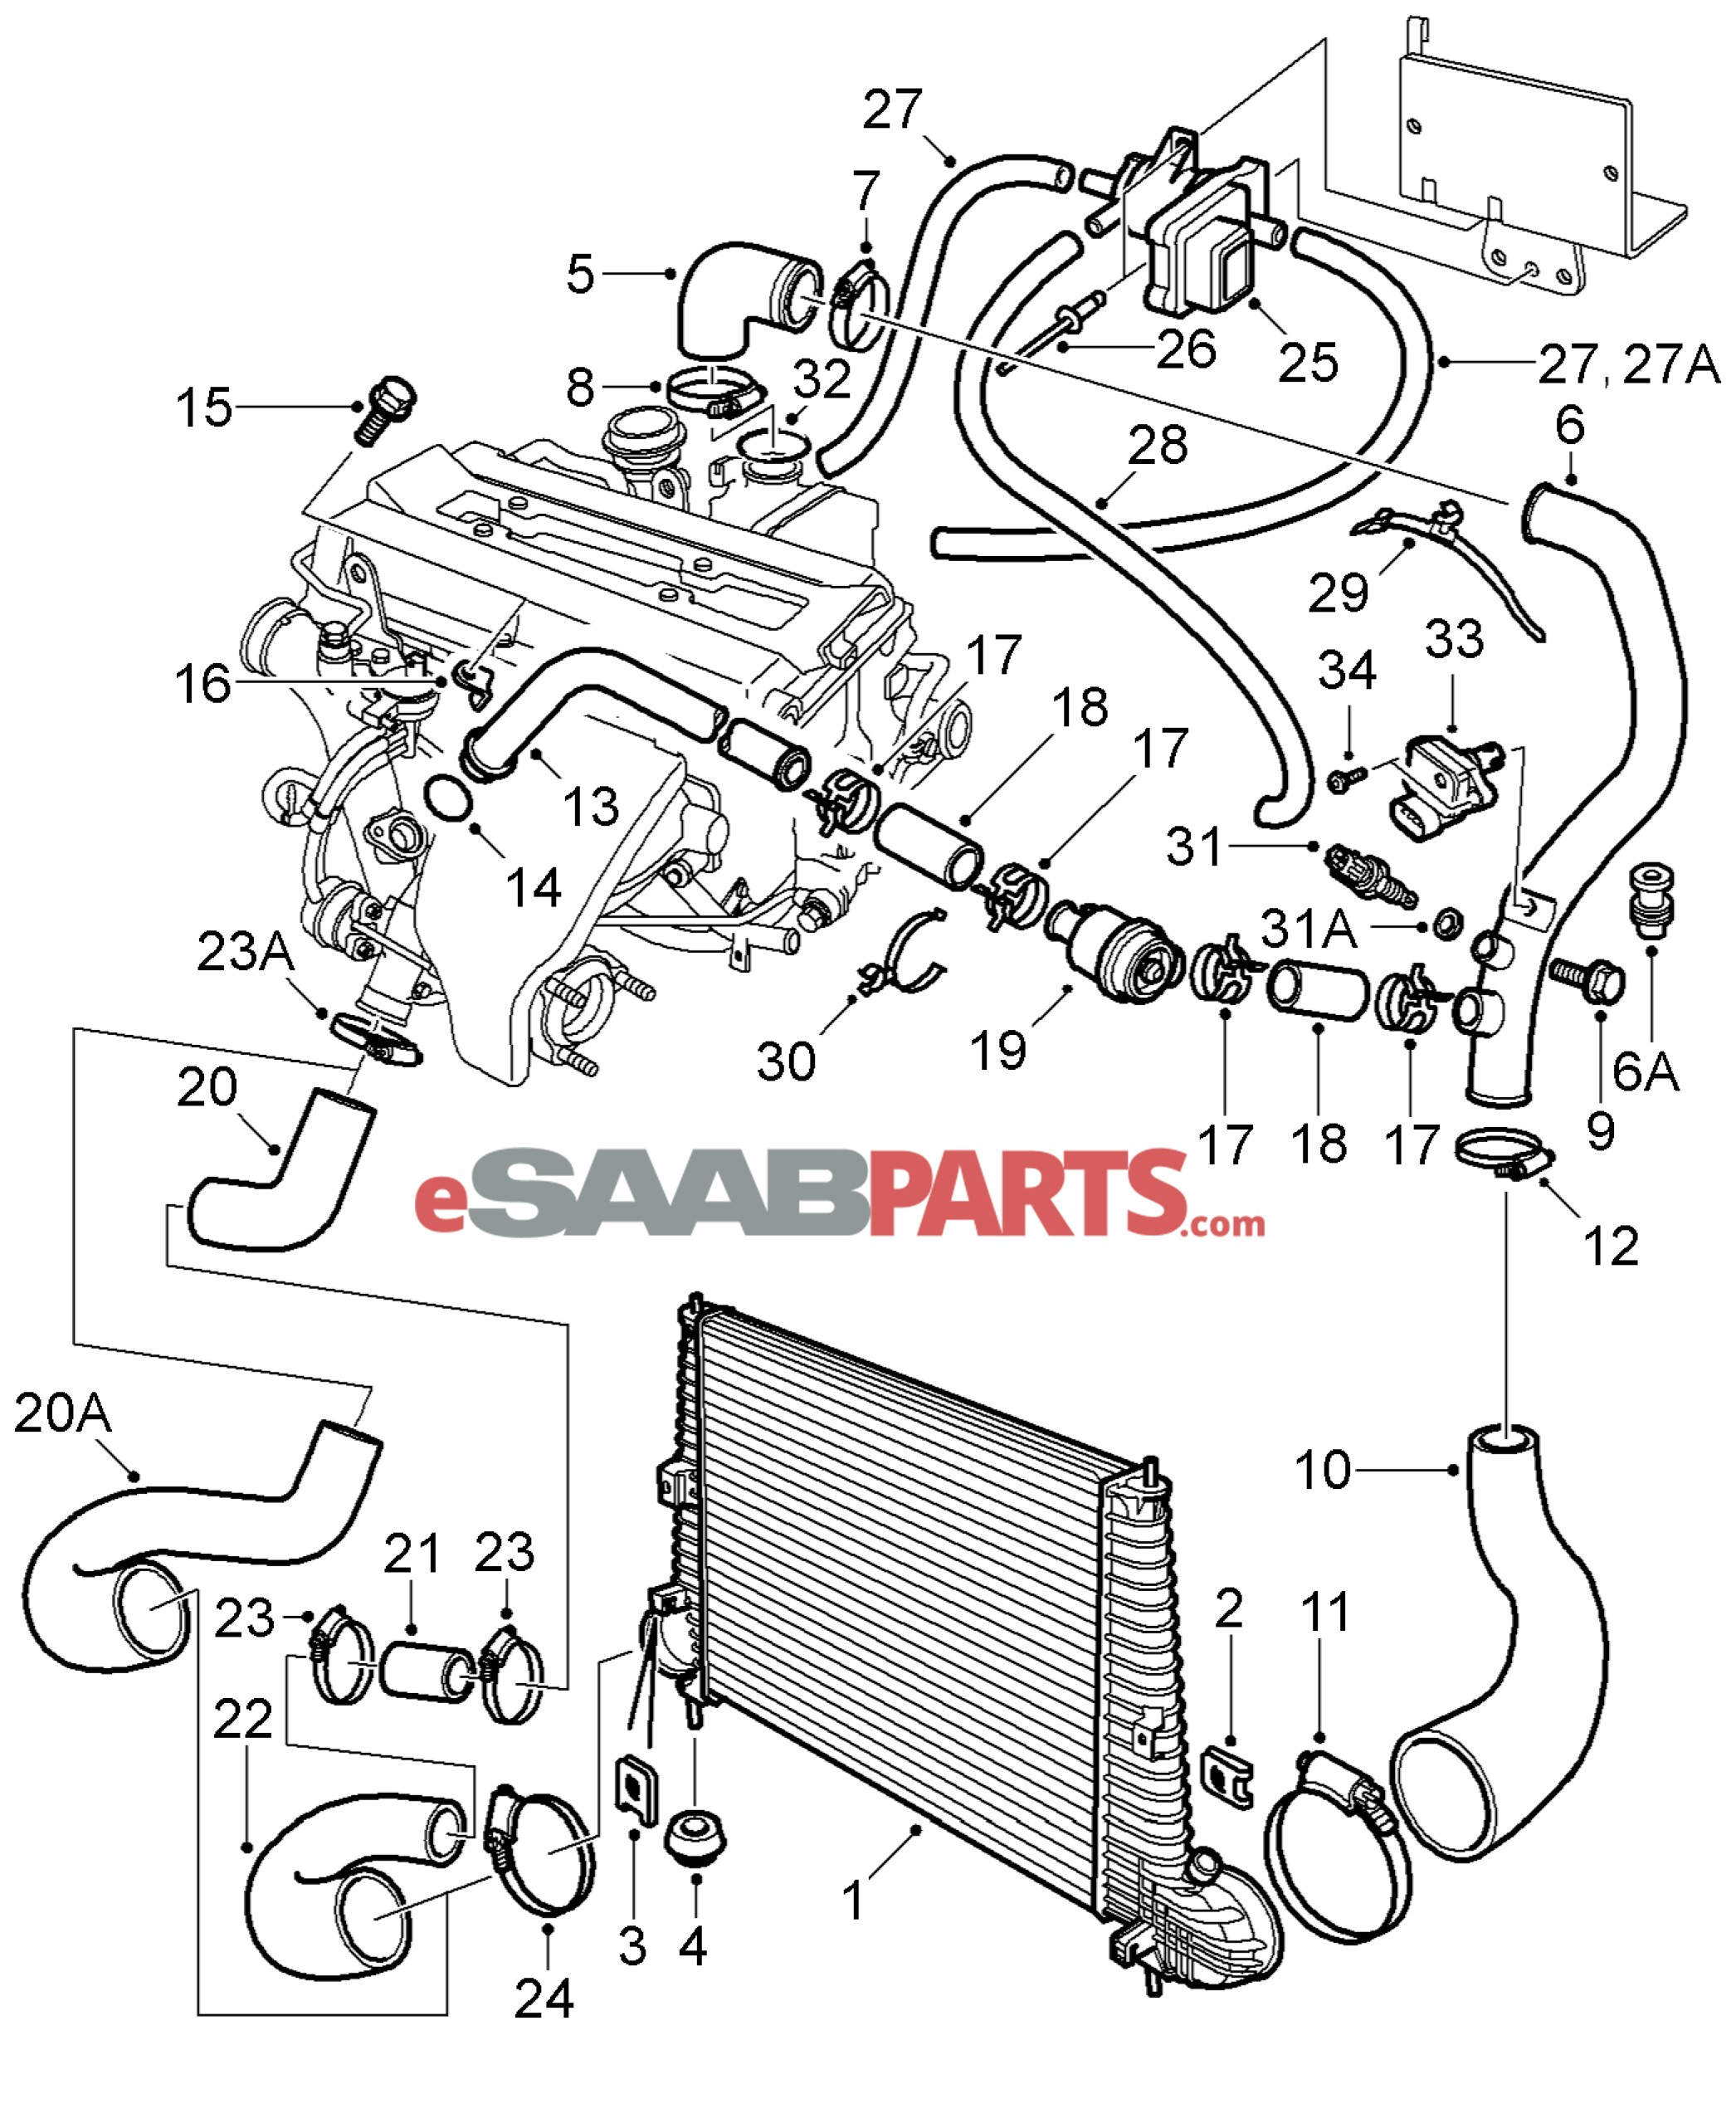 2 9 liter ford engine diagram wiring library Ford 2.3 Timing Diagram 2 9 liter ford engine diagram